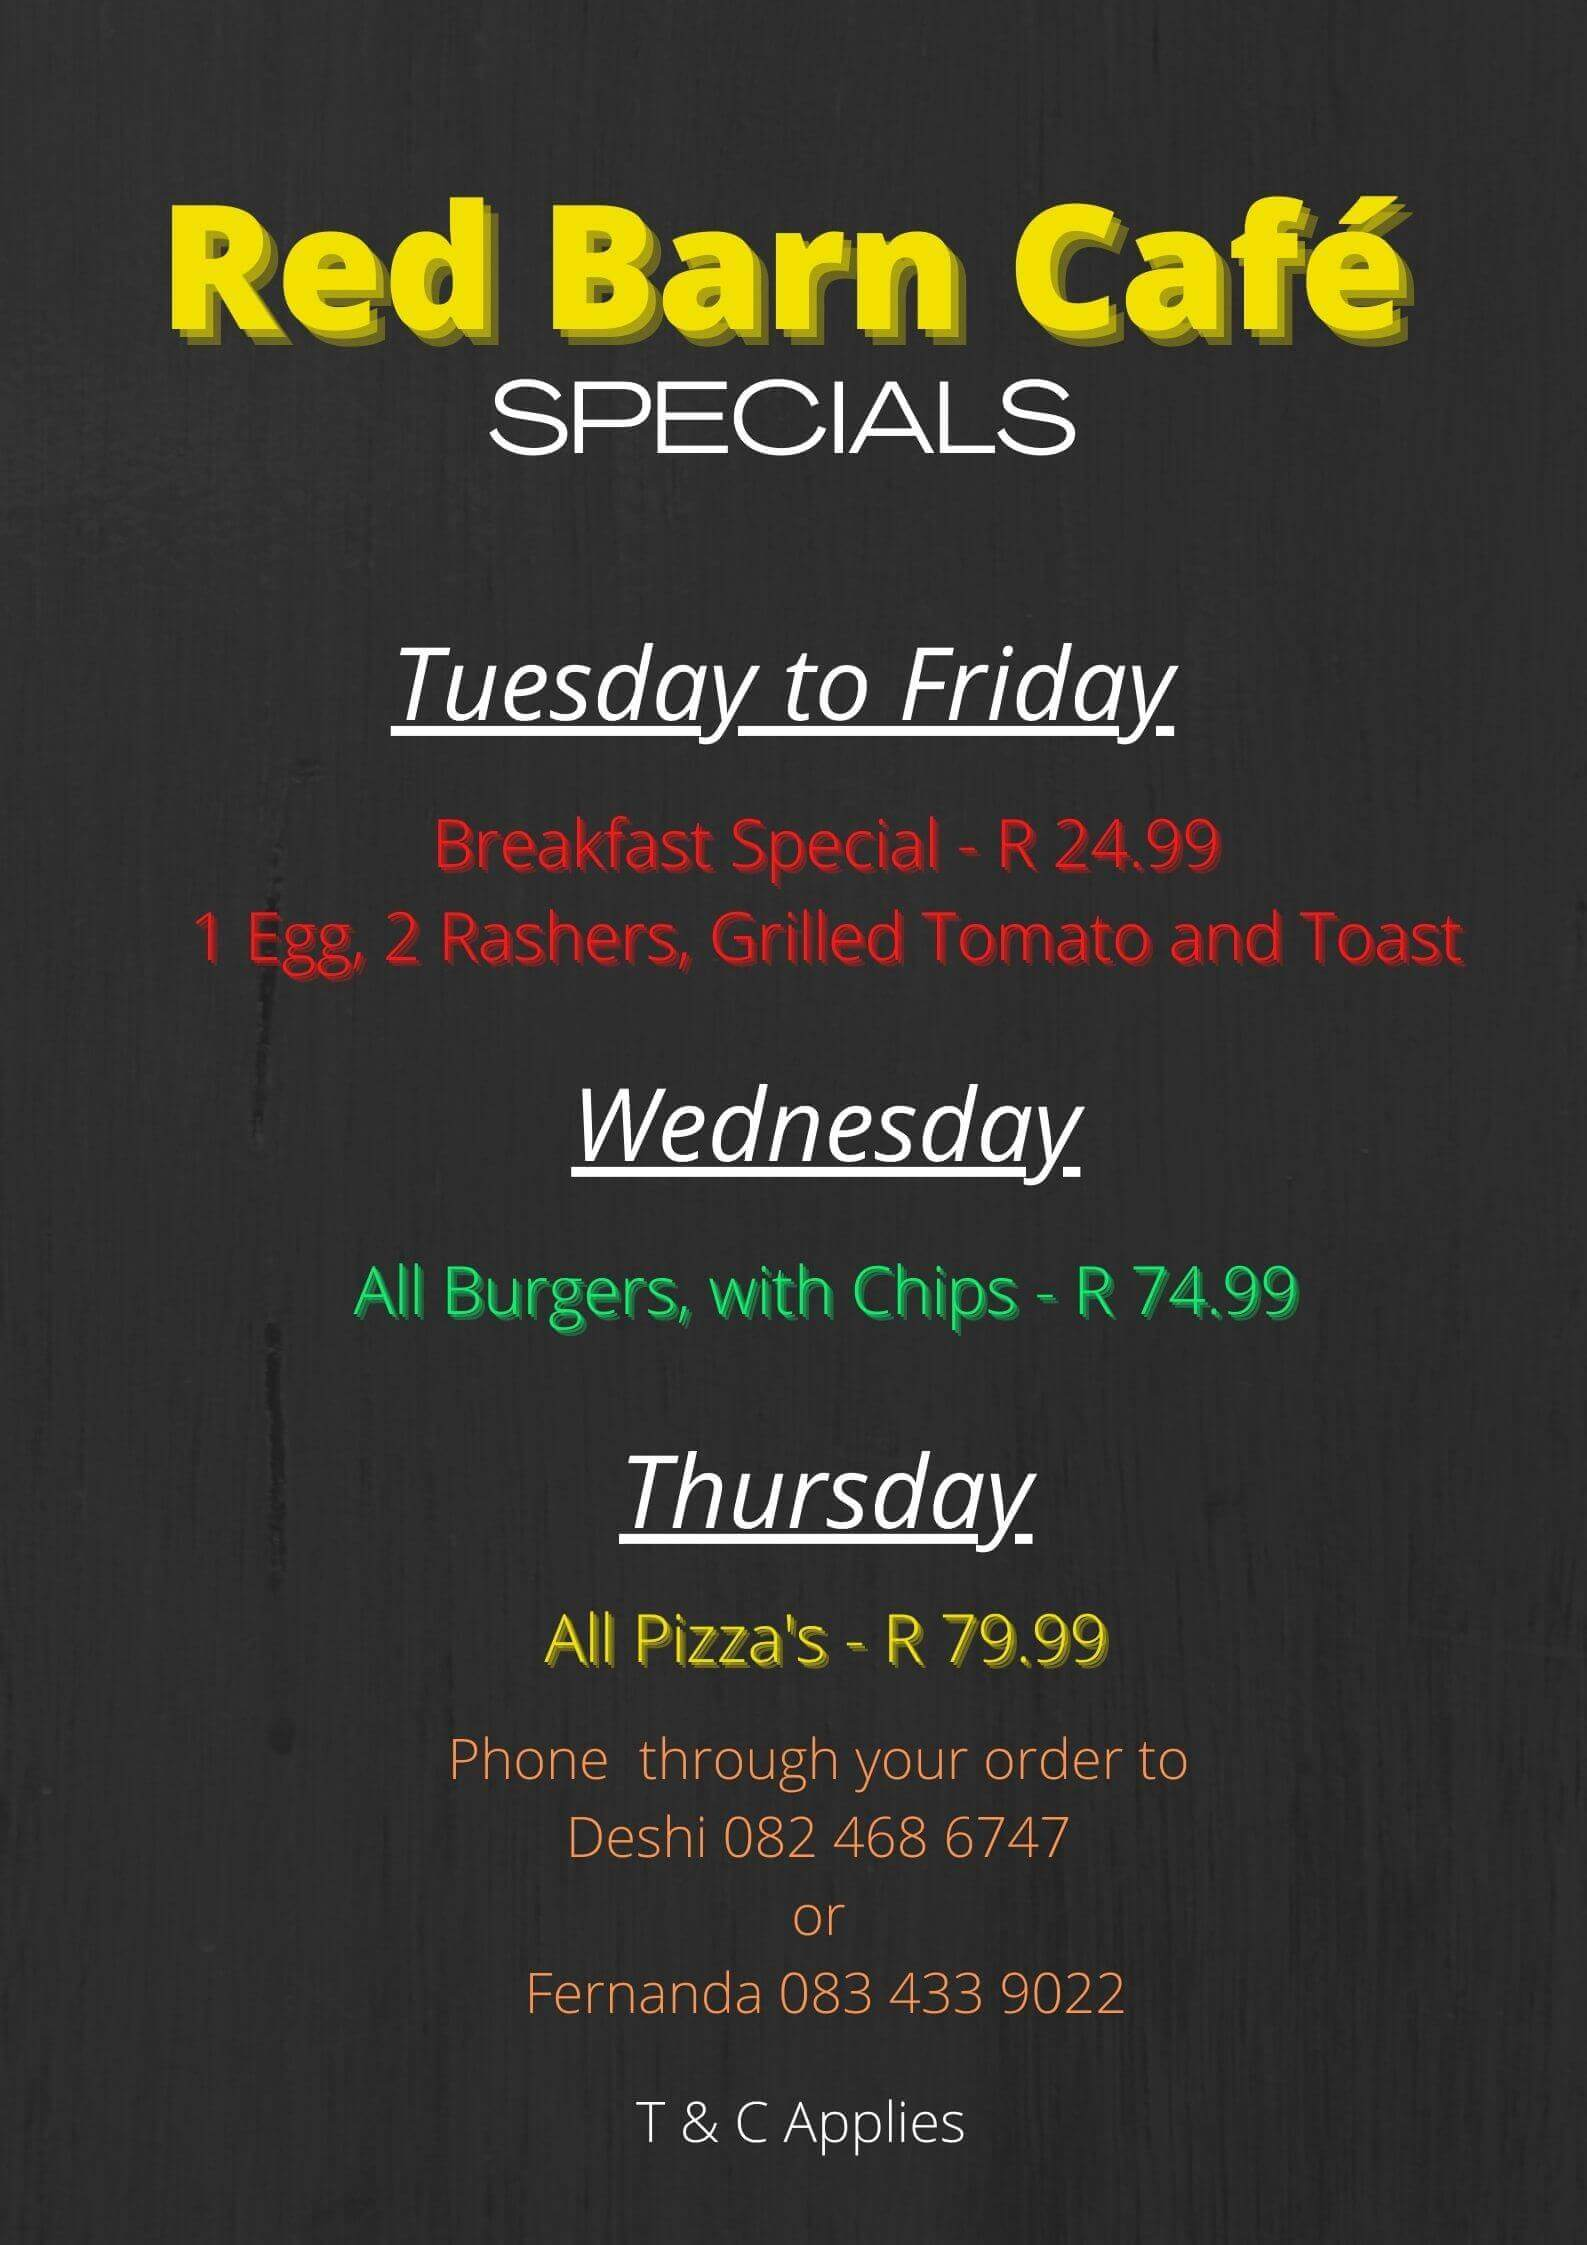 Week day specials at Red Barn Cafe